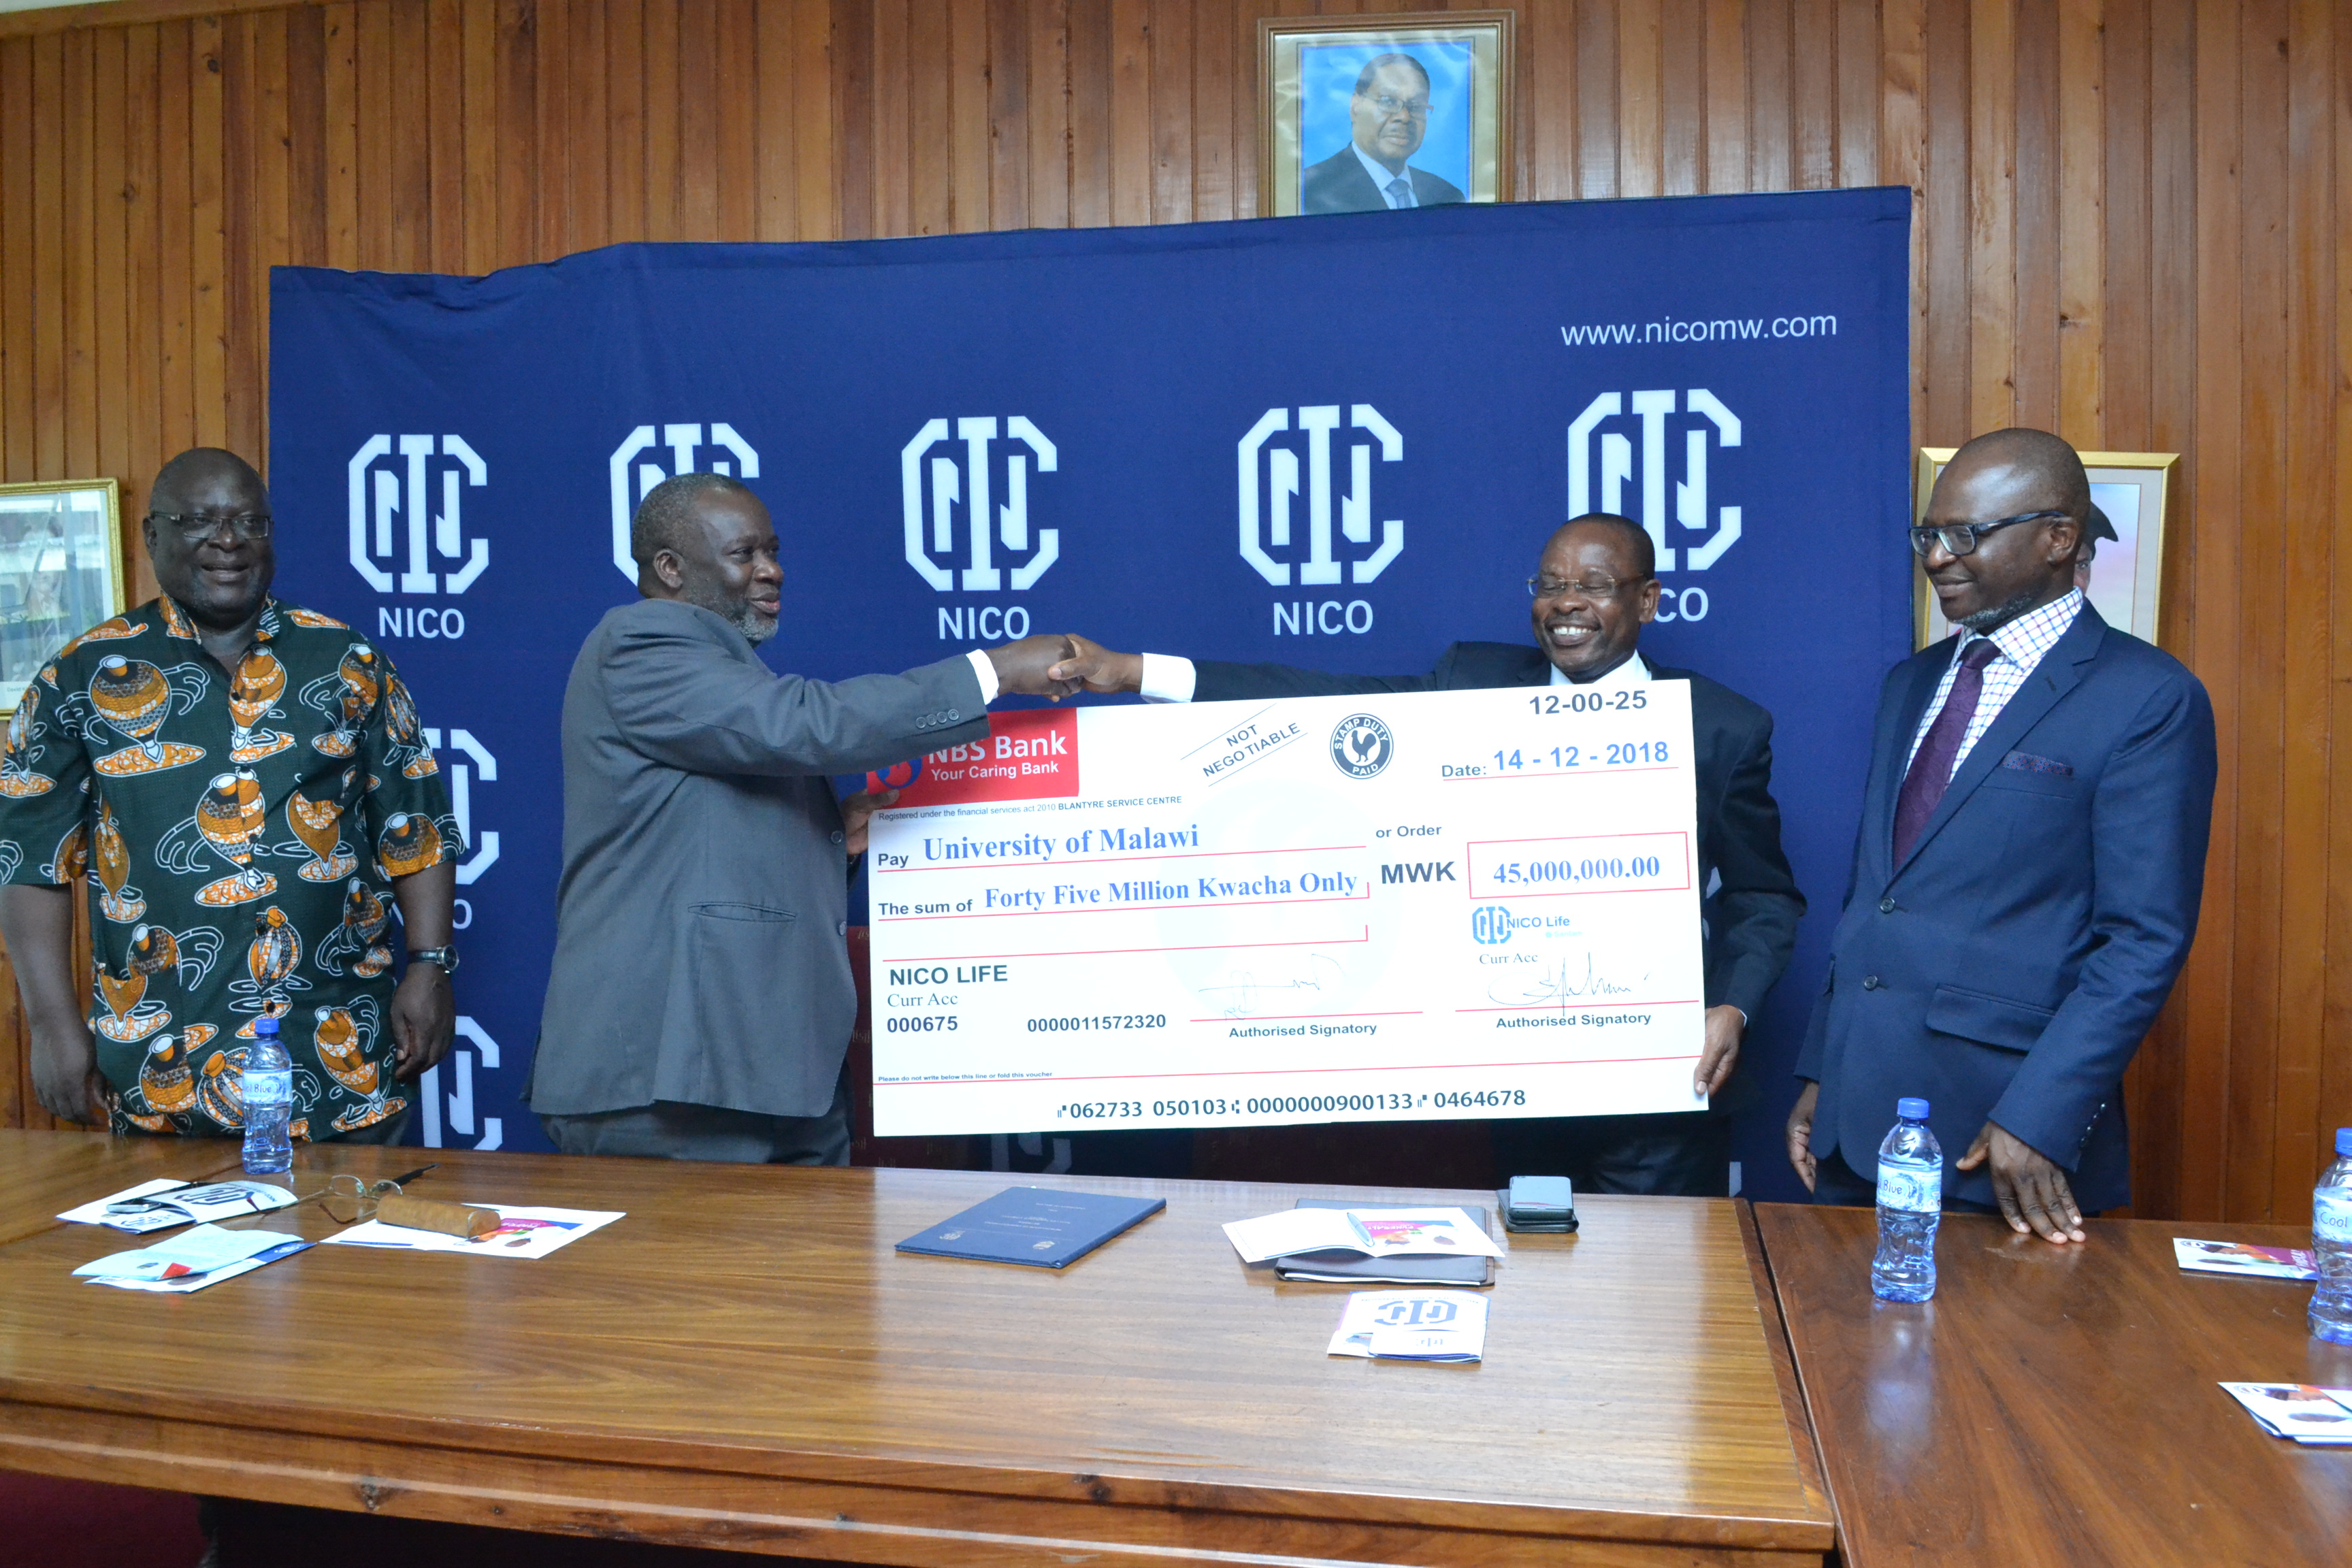 UNIMA SECURES A K45 MILLION SCHOLARSHIP FOR NEEDY STUDENTS